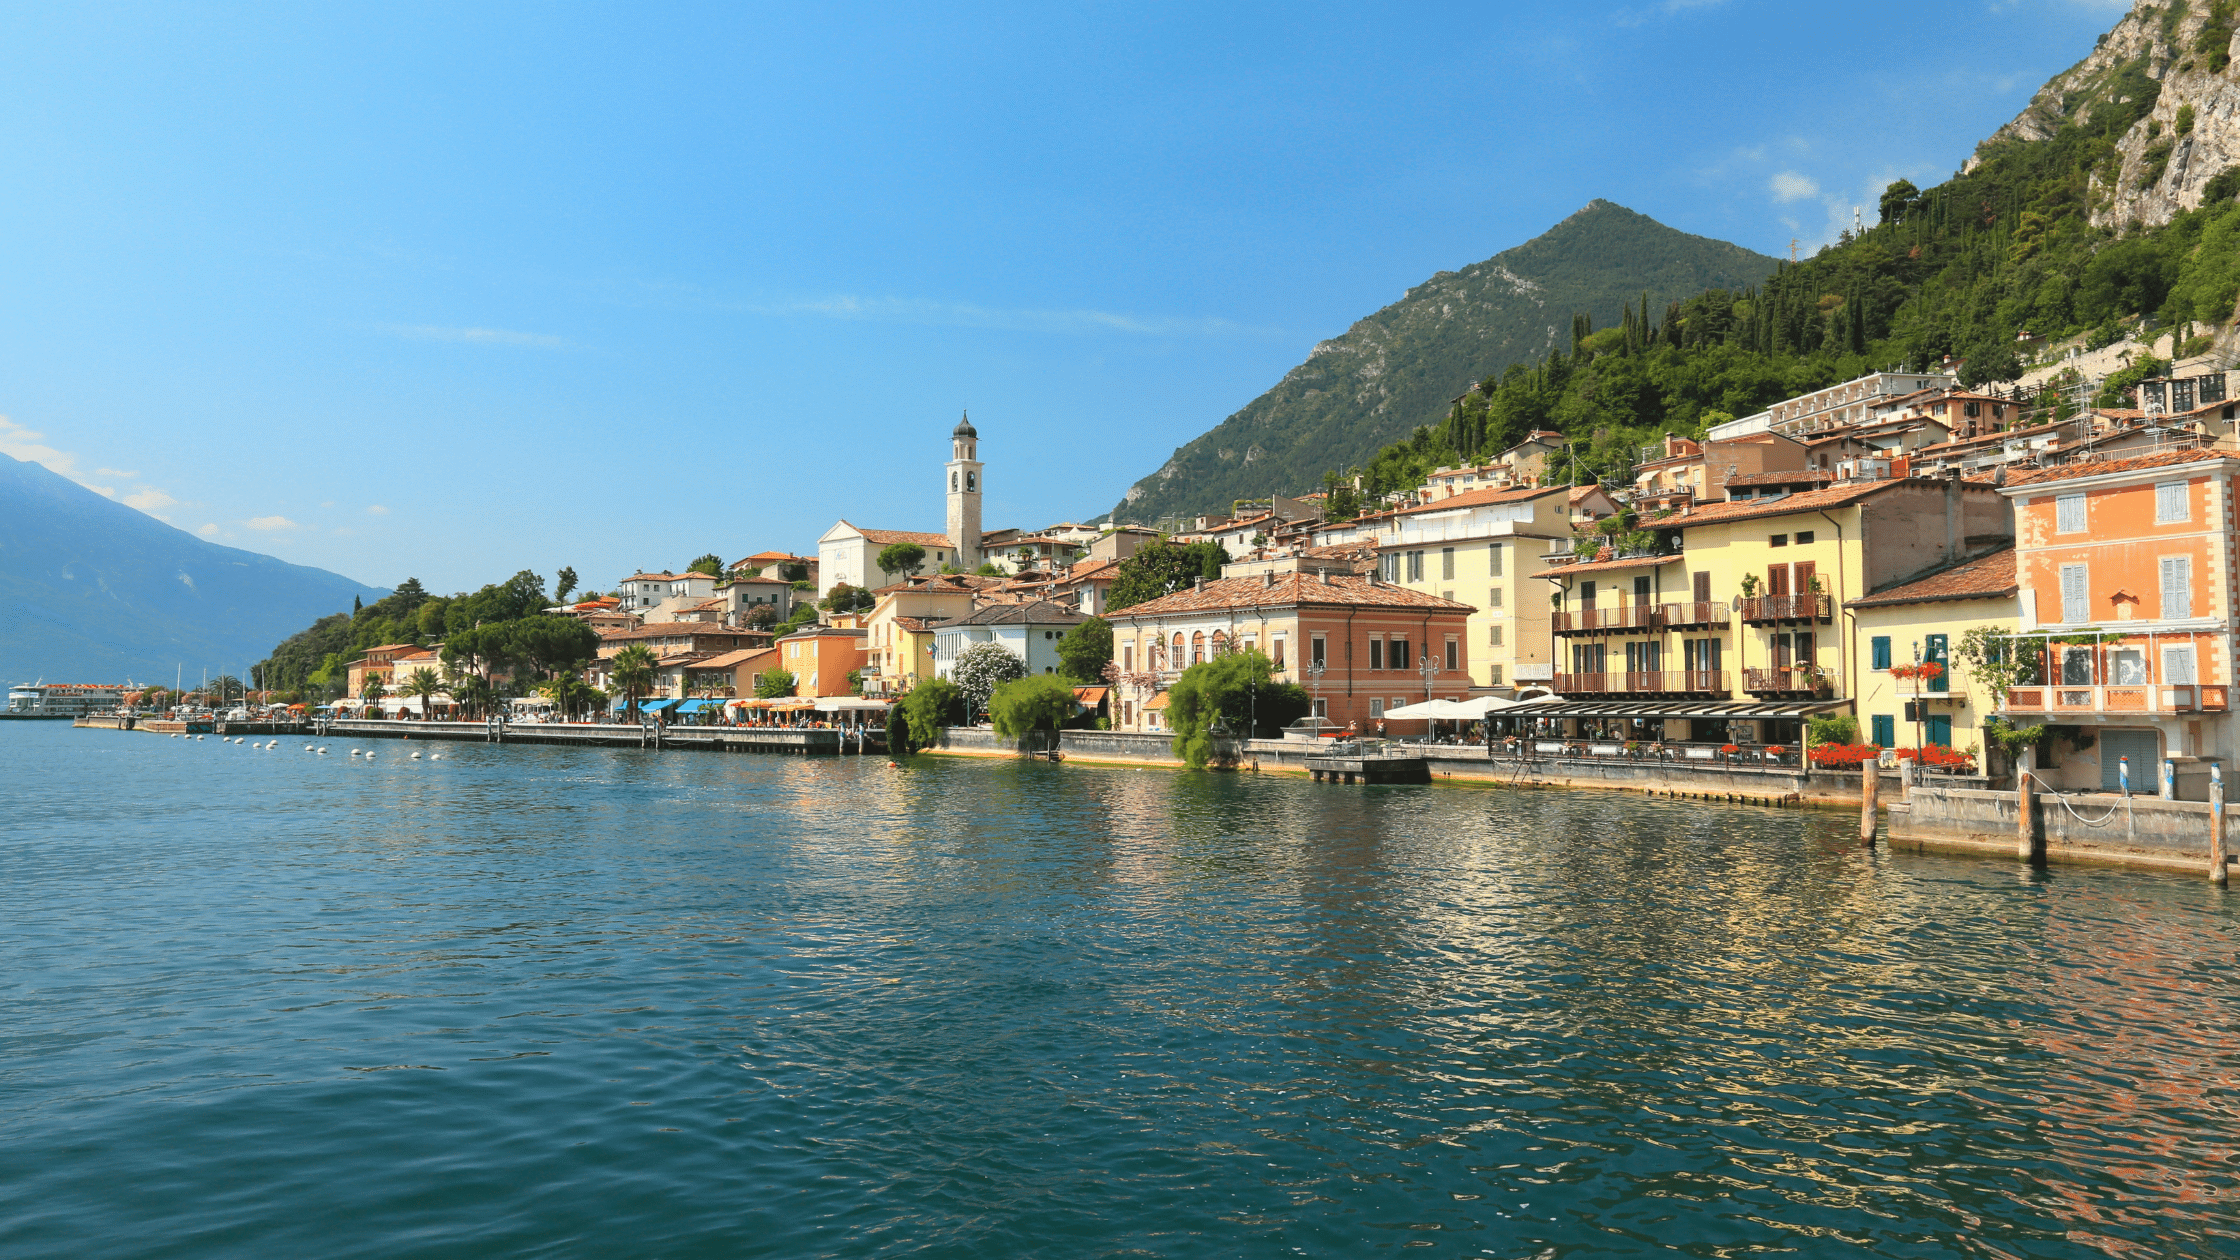 Special offer on a holiday to Limone, Lake Garda, Italy - staying at the Hotel Splendid Palace